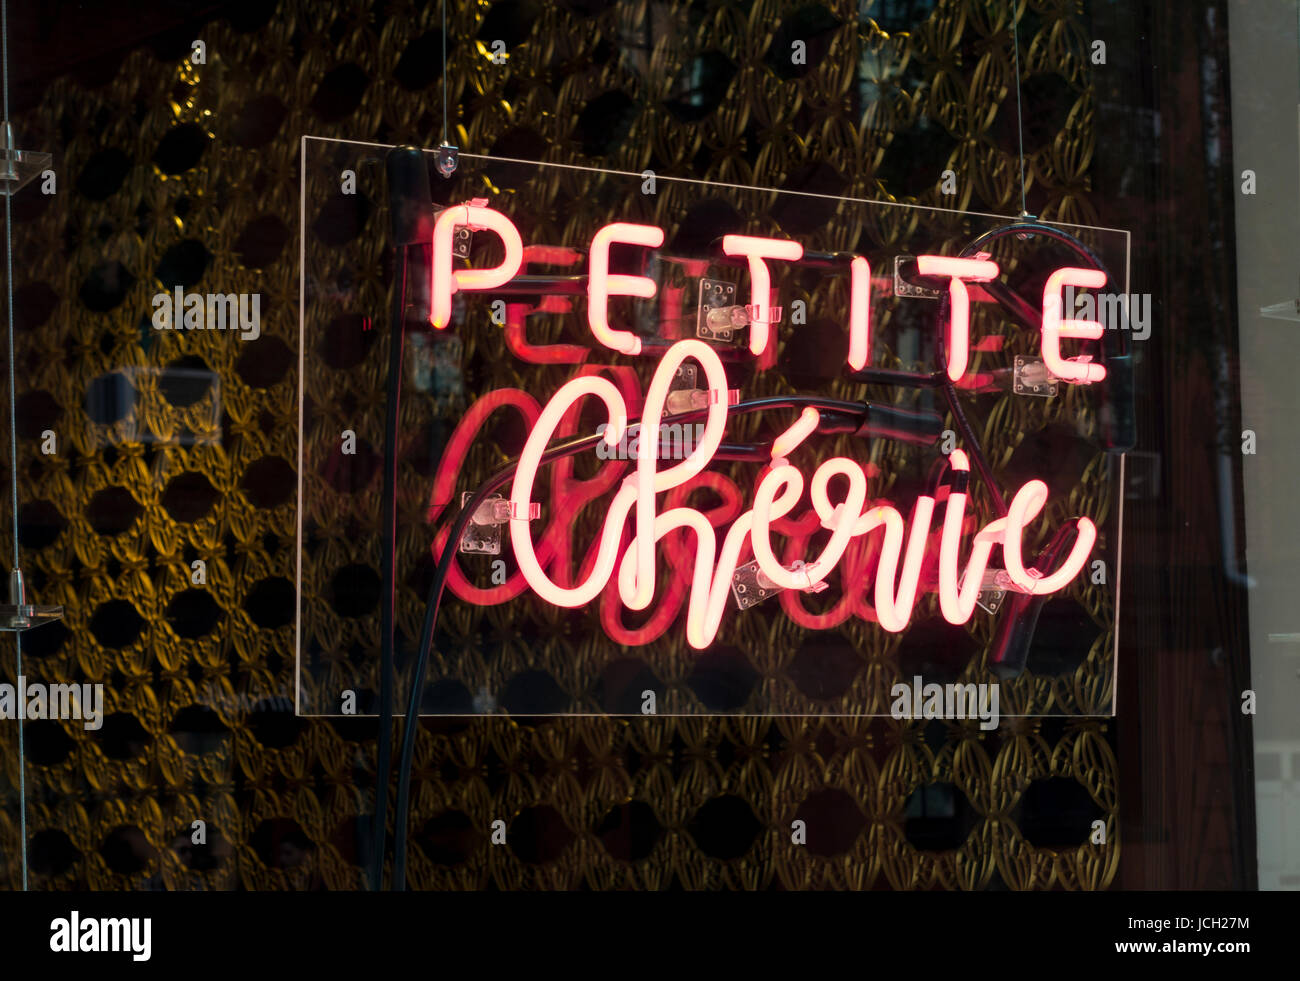 Neon sign in the window of Petite Chérie, a boutique selling perfume - Stock Image